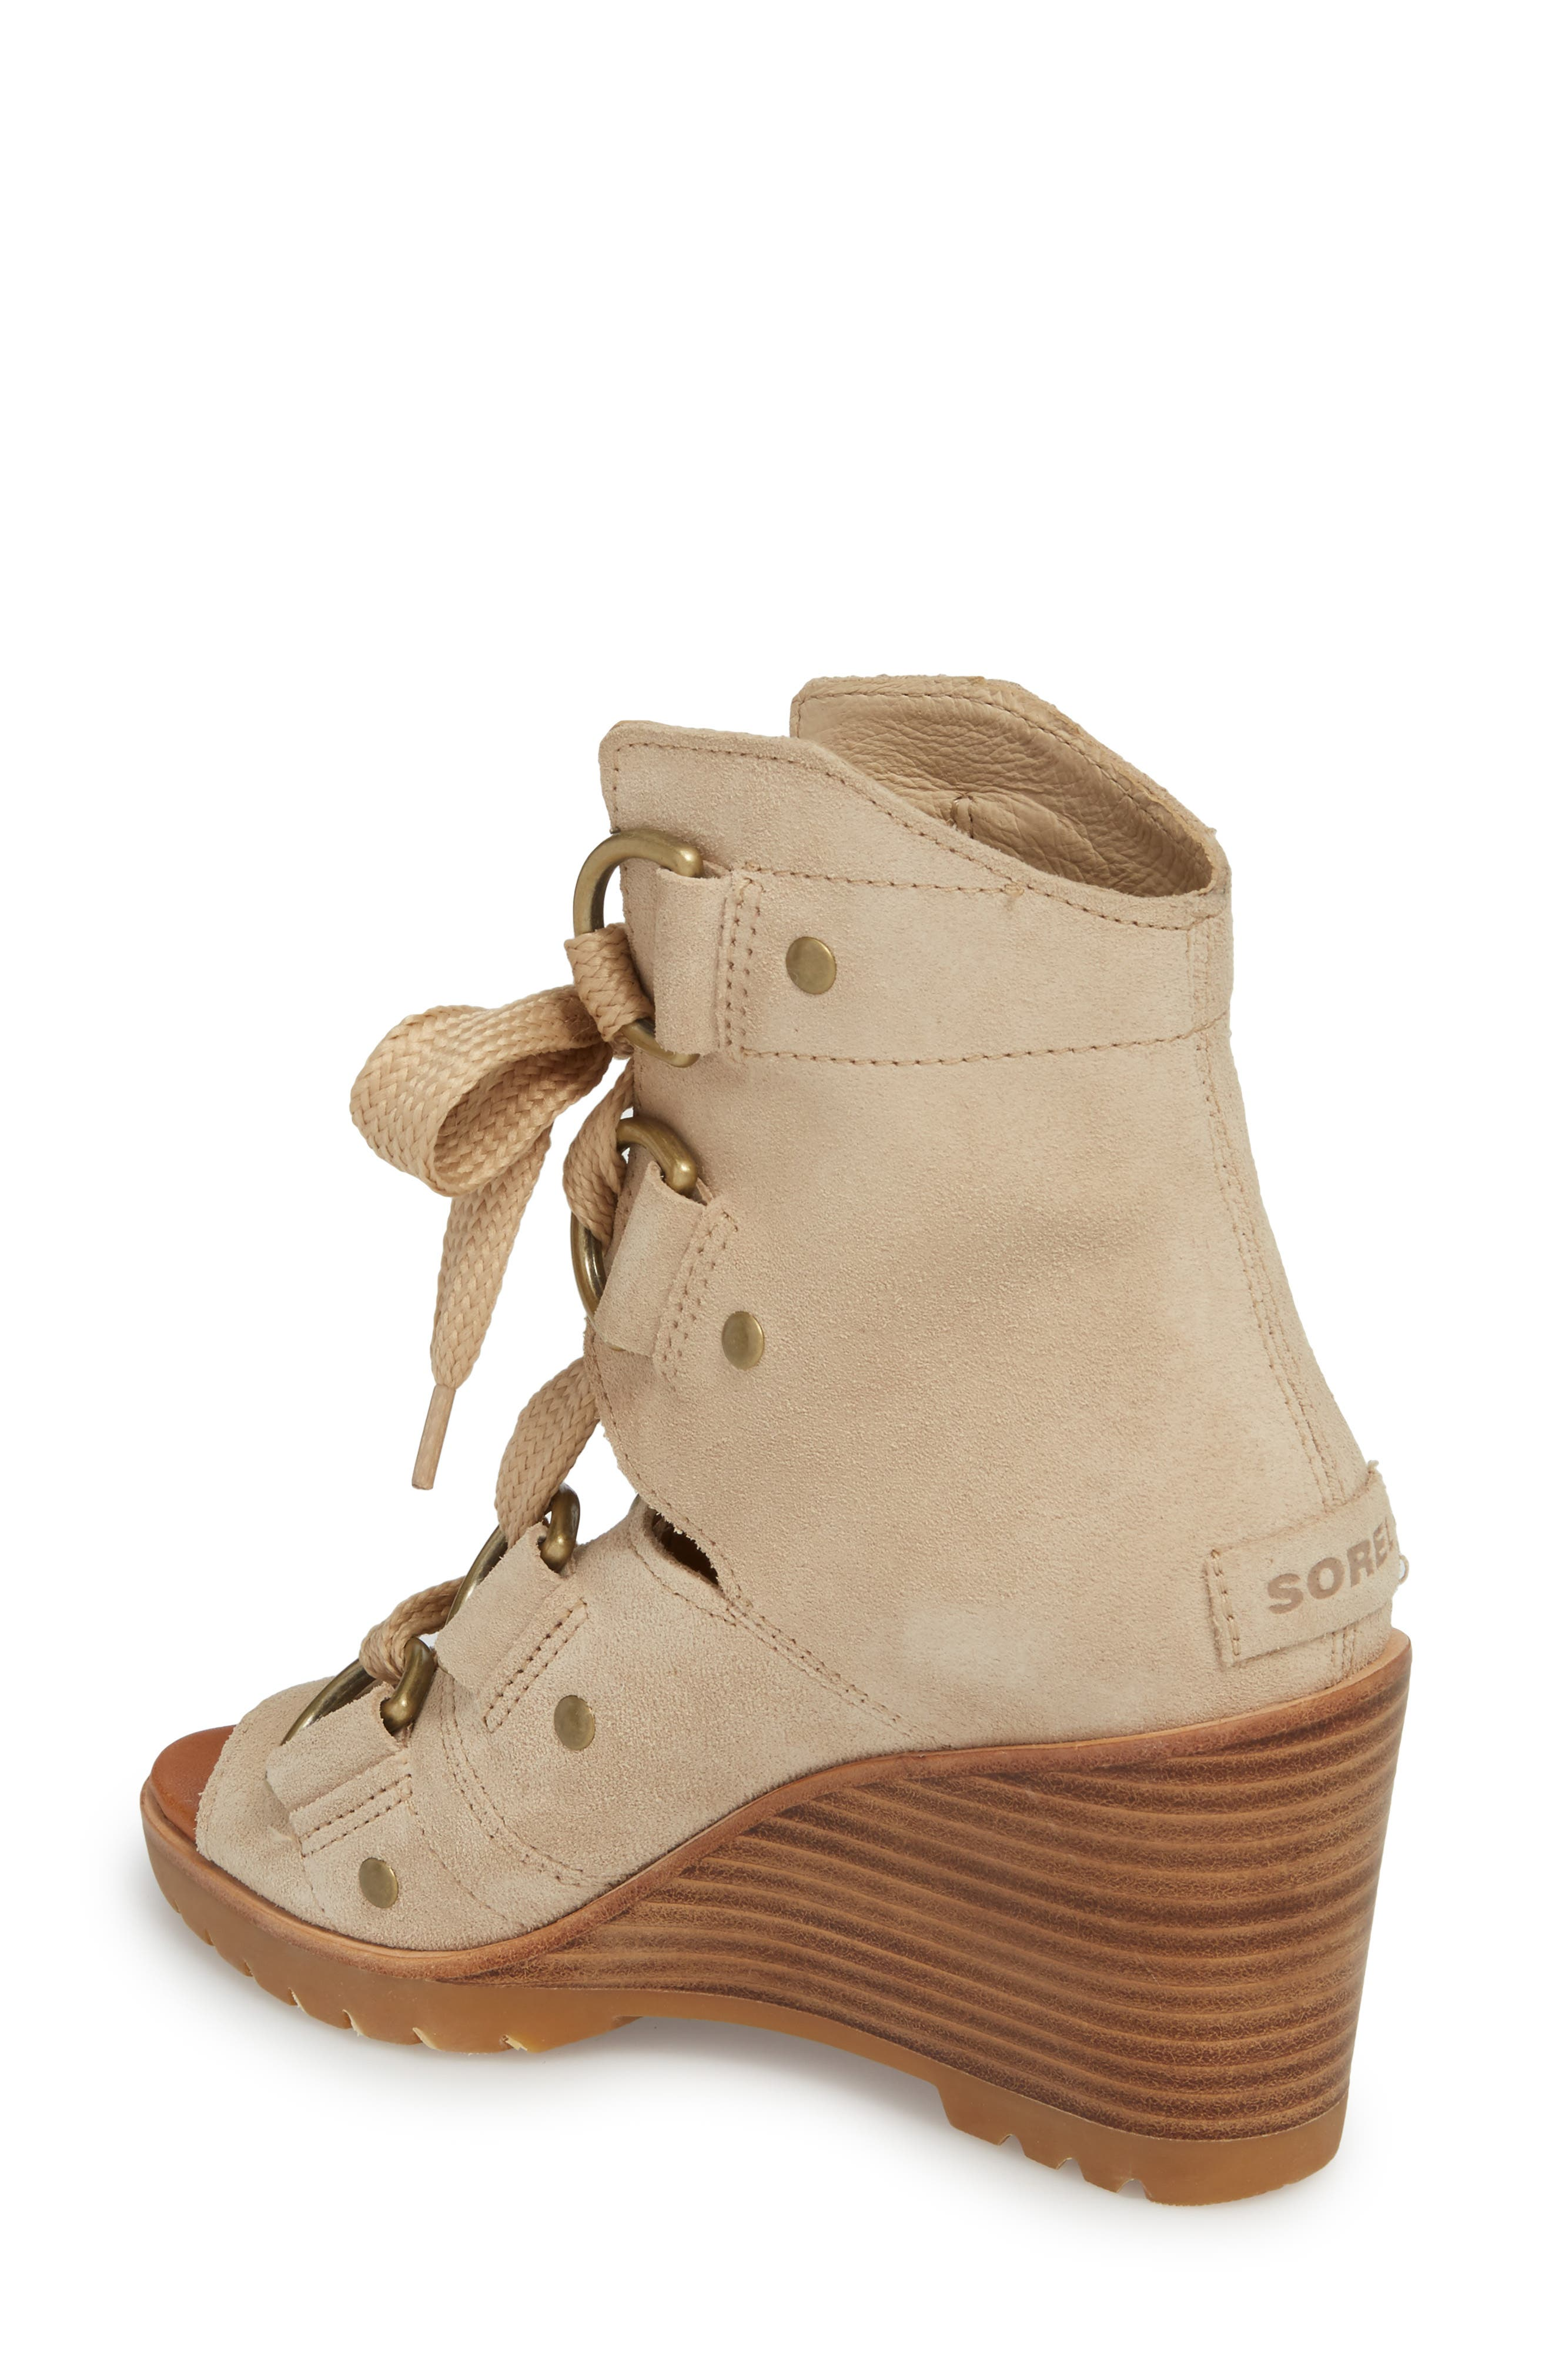 After Hours Wedge Bootie,                             Alternate thumbnail 2, color,                             Oatmeal